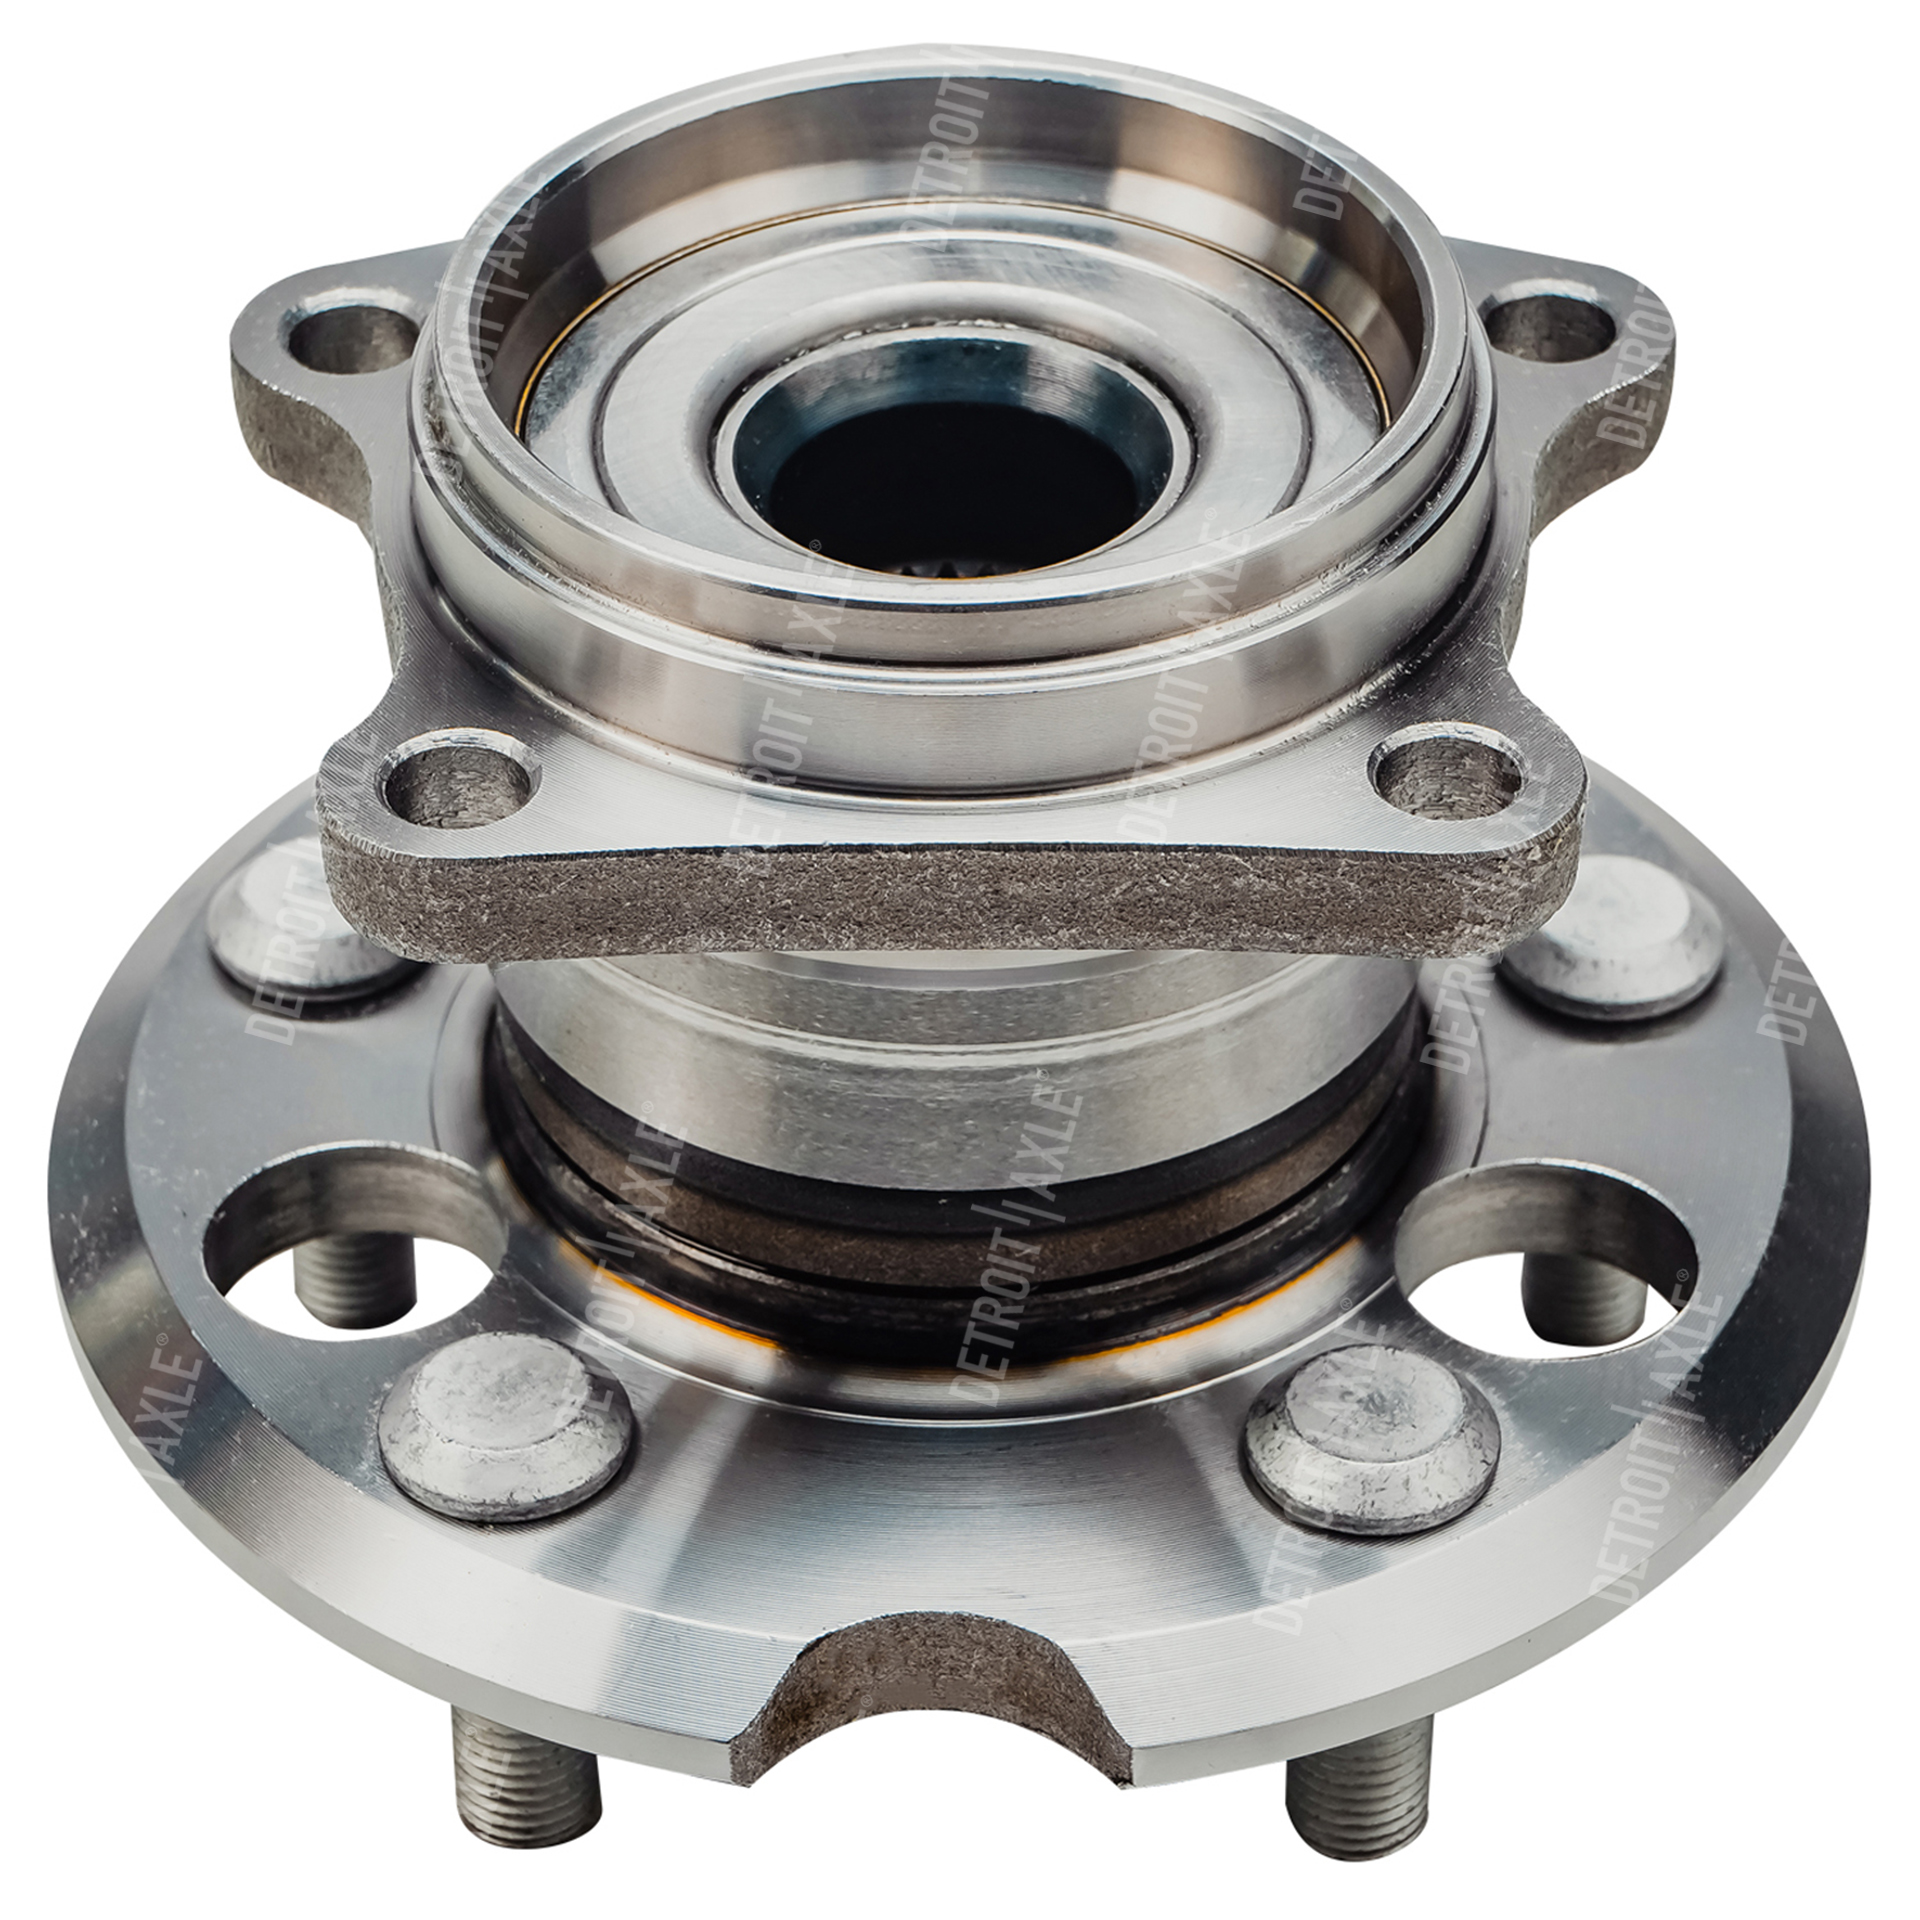 hight resolution of rear wheel hub and bearing assembly left or right side fits awd 2001 2005